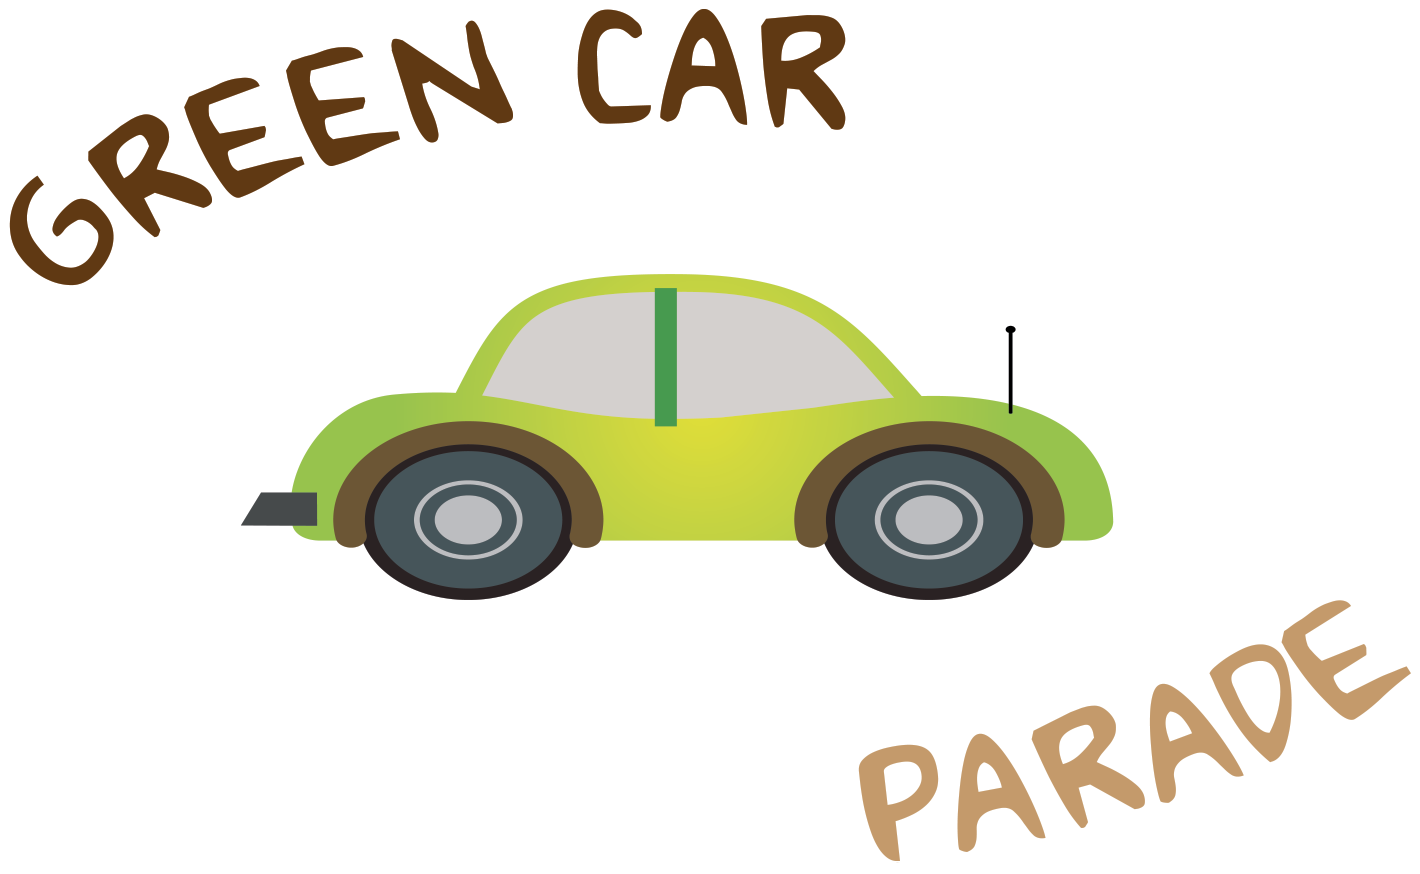 green_car_logo white.png